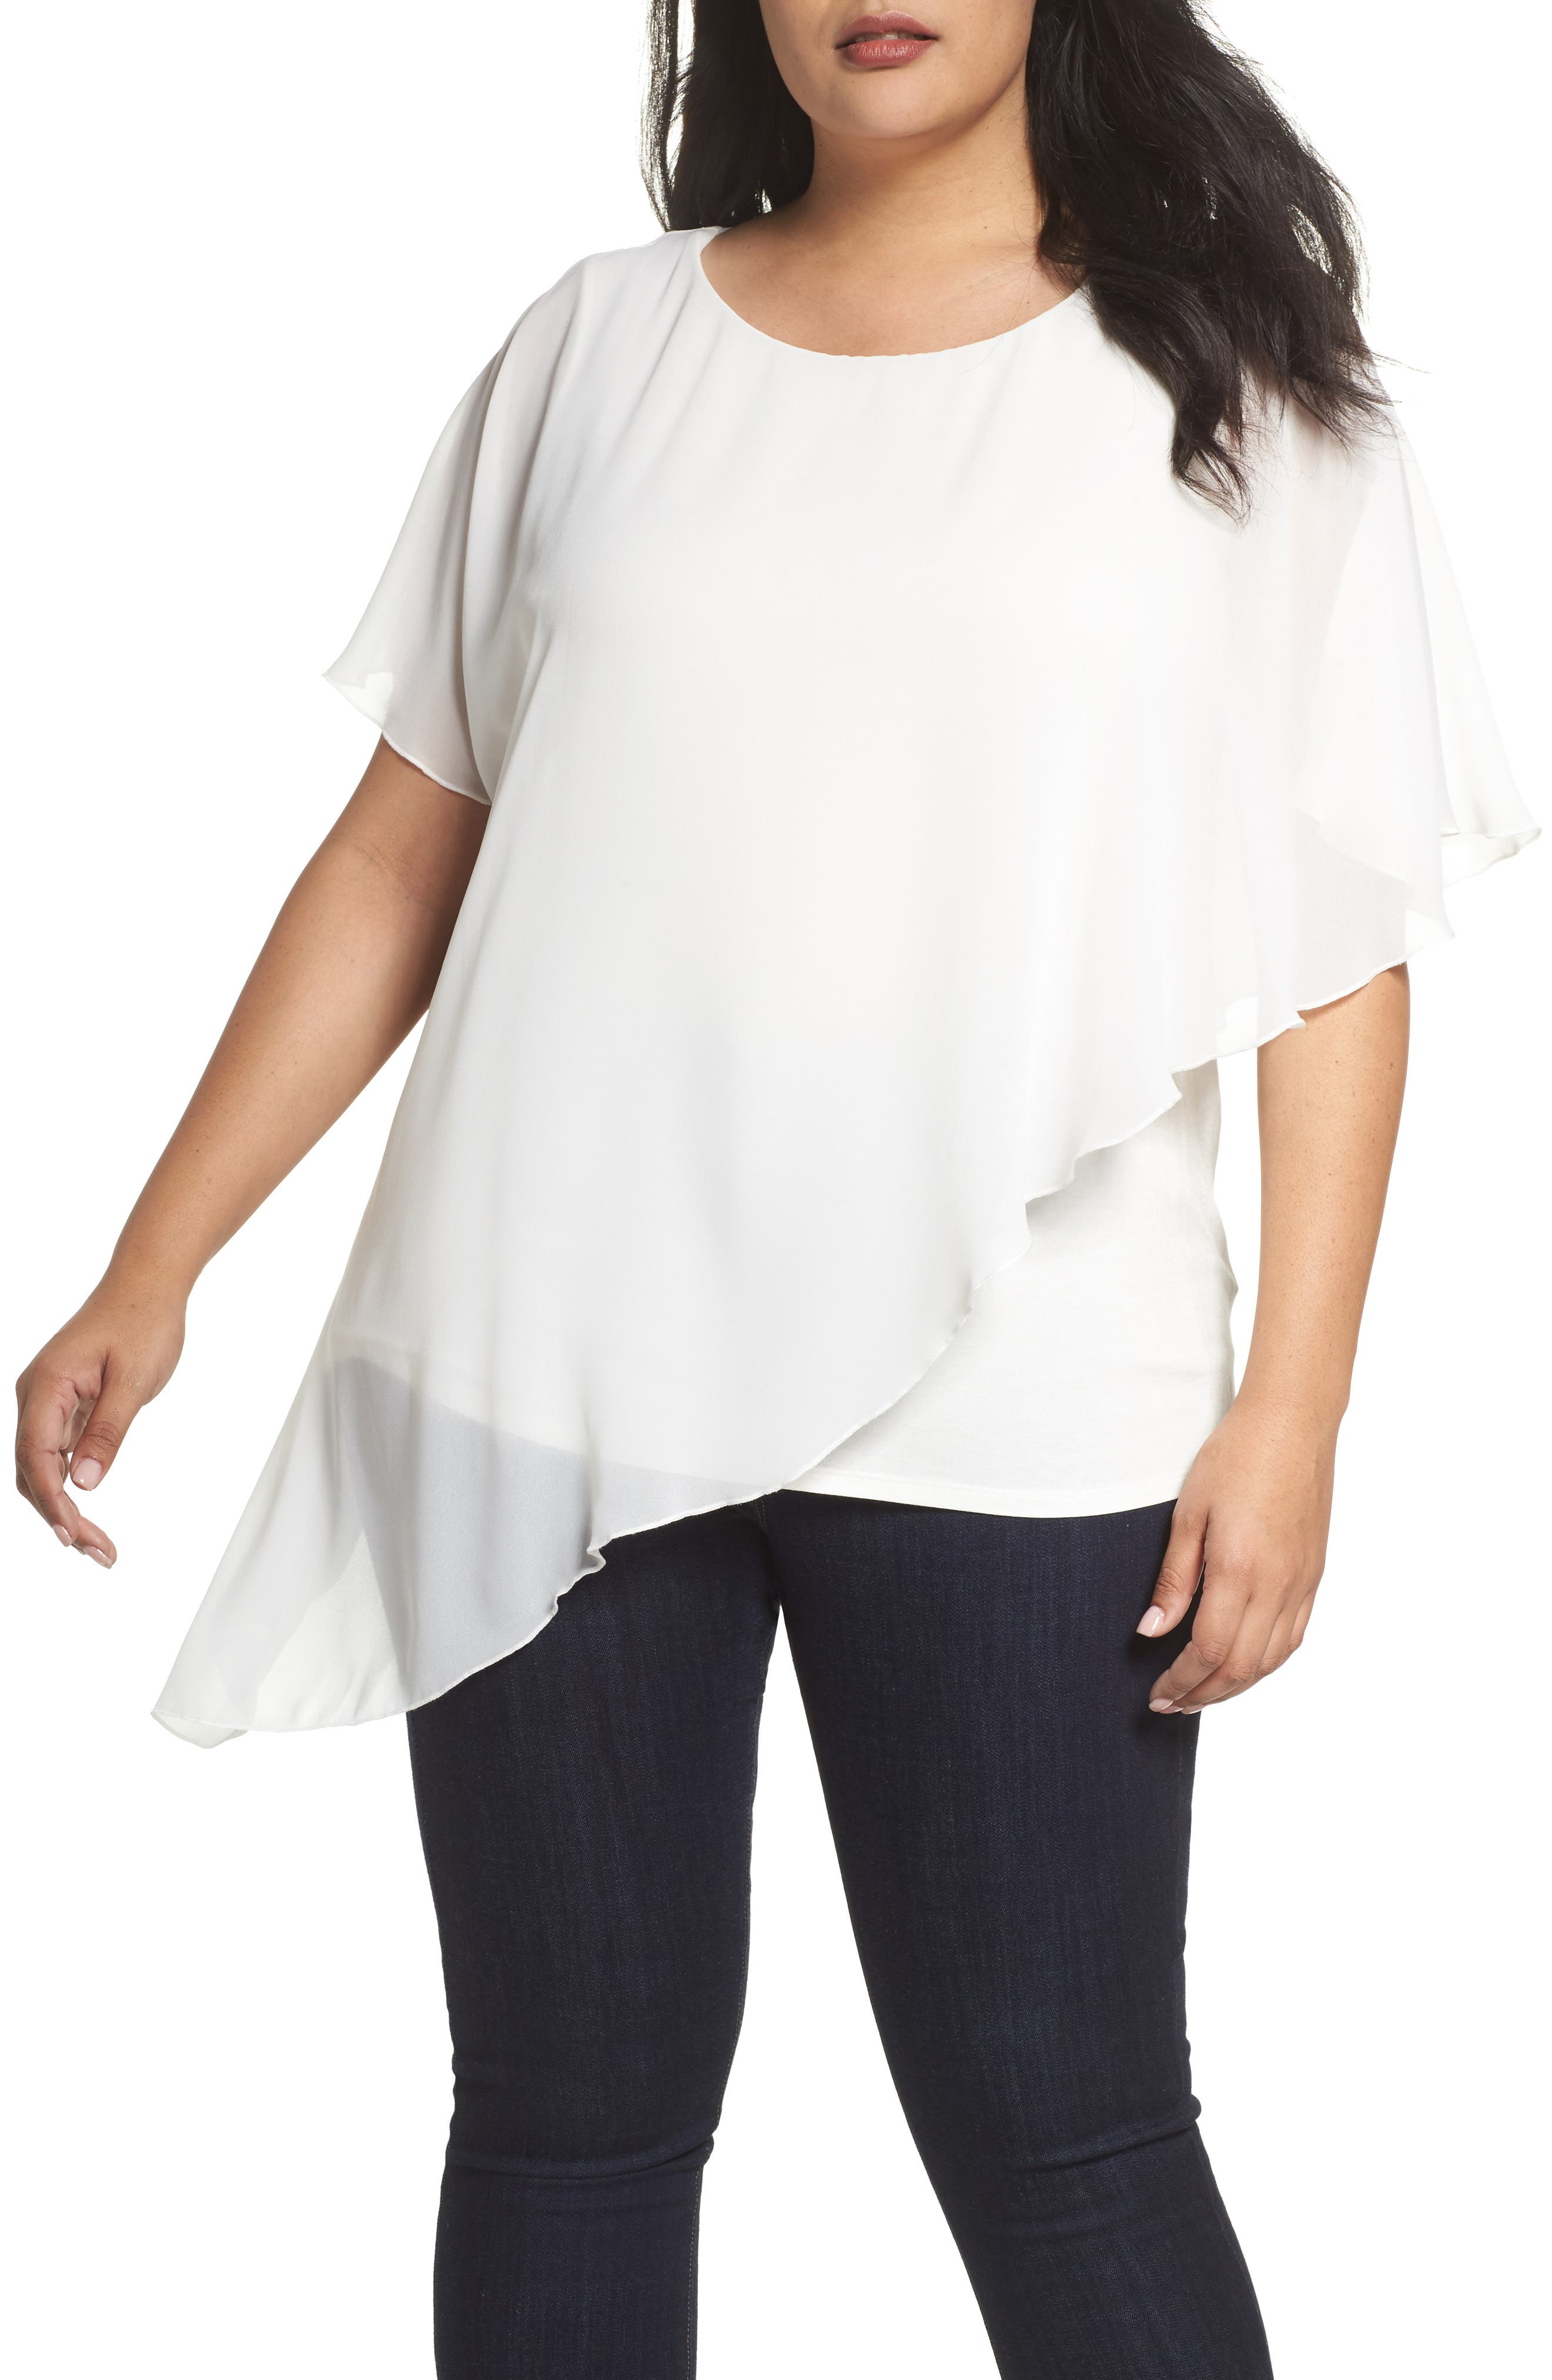 Alternate Image 1 Selected - Evans Asymmetrical Overlay Top (Plus Size)